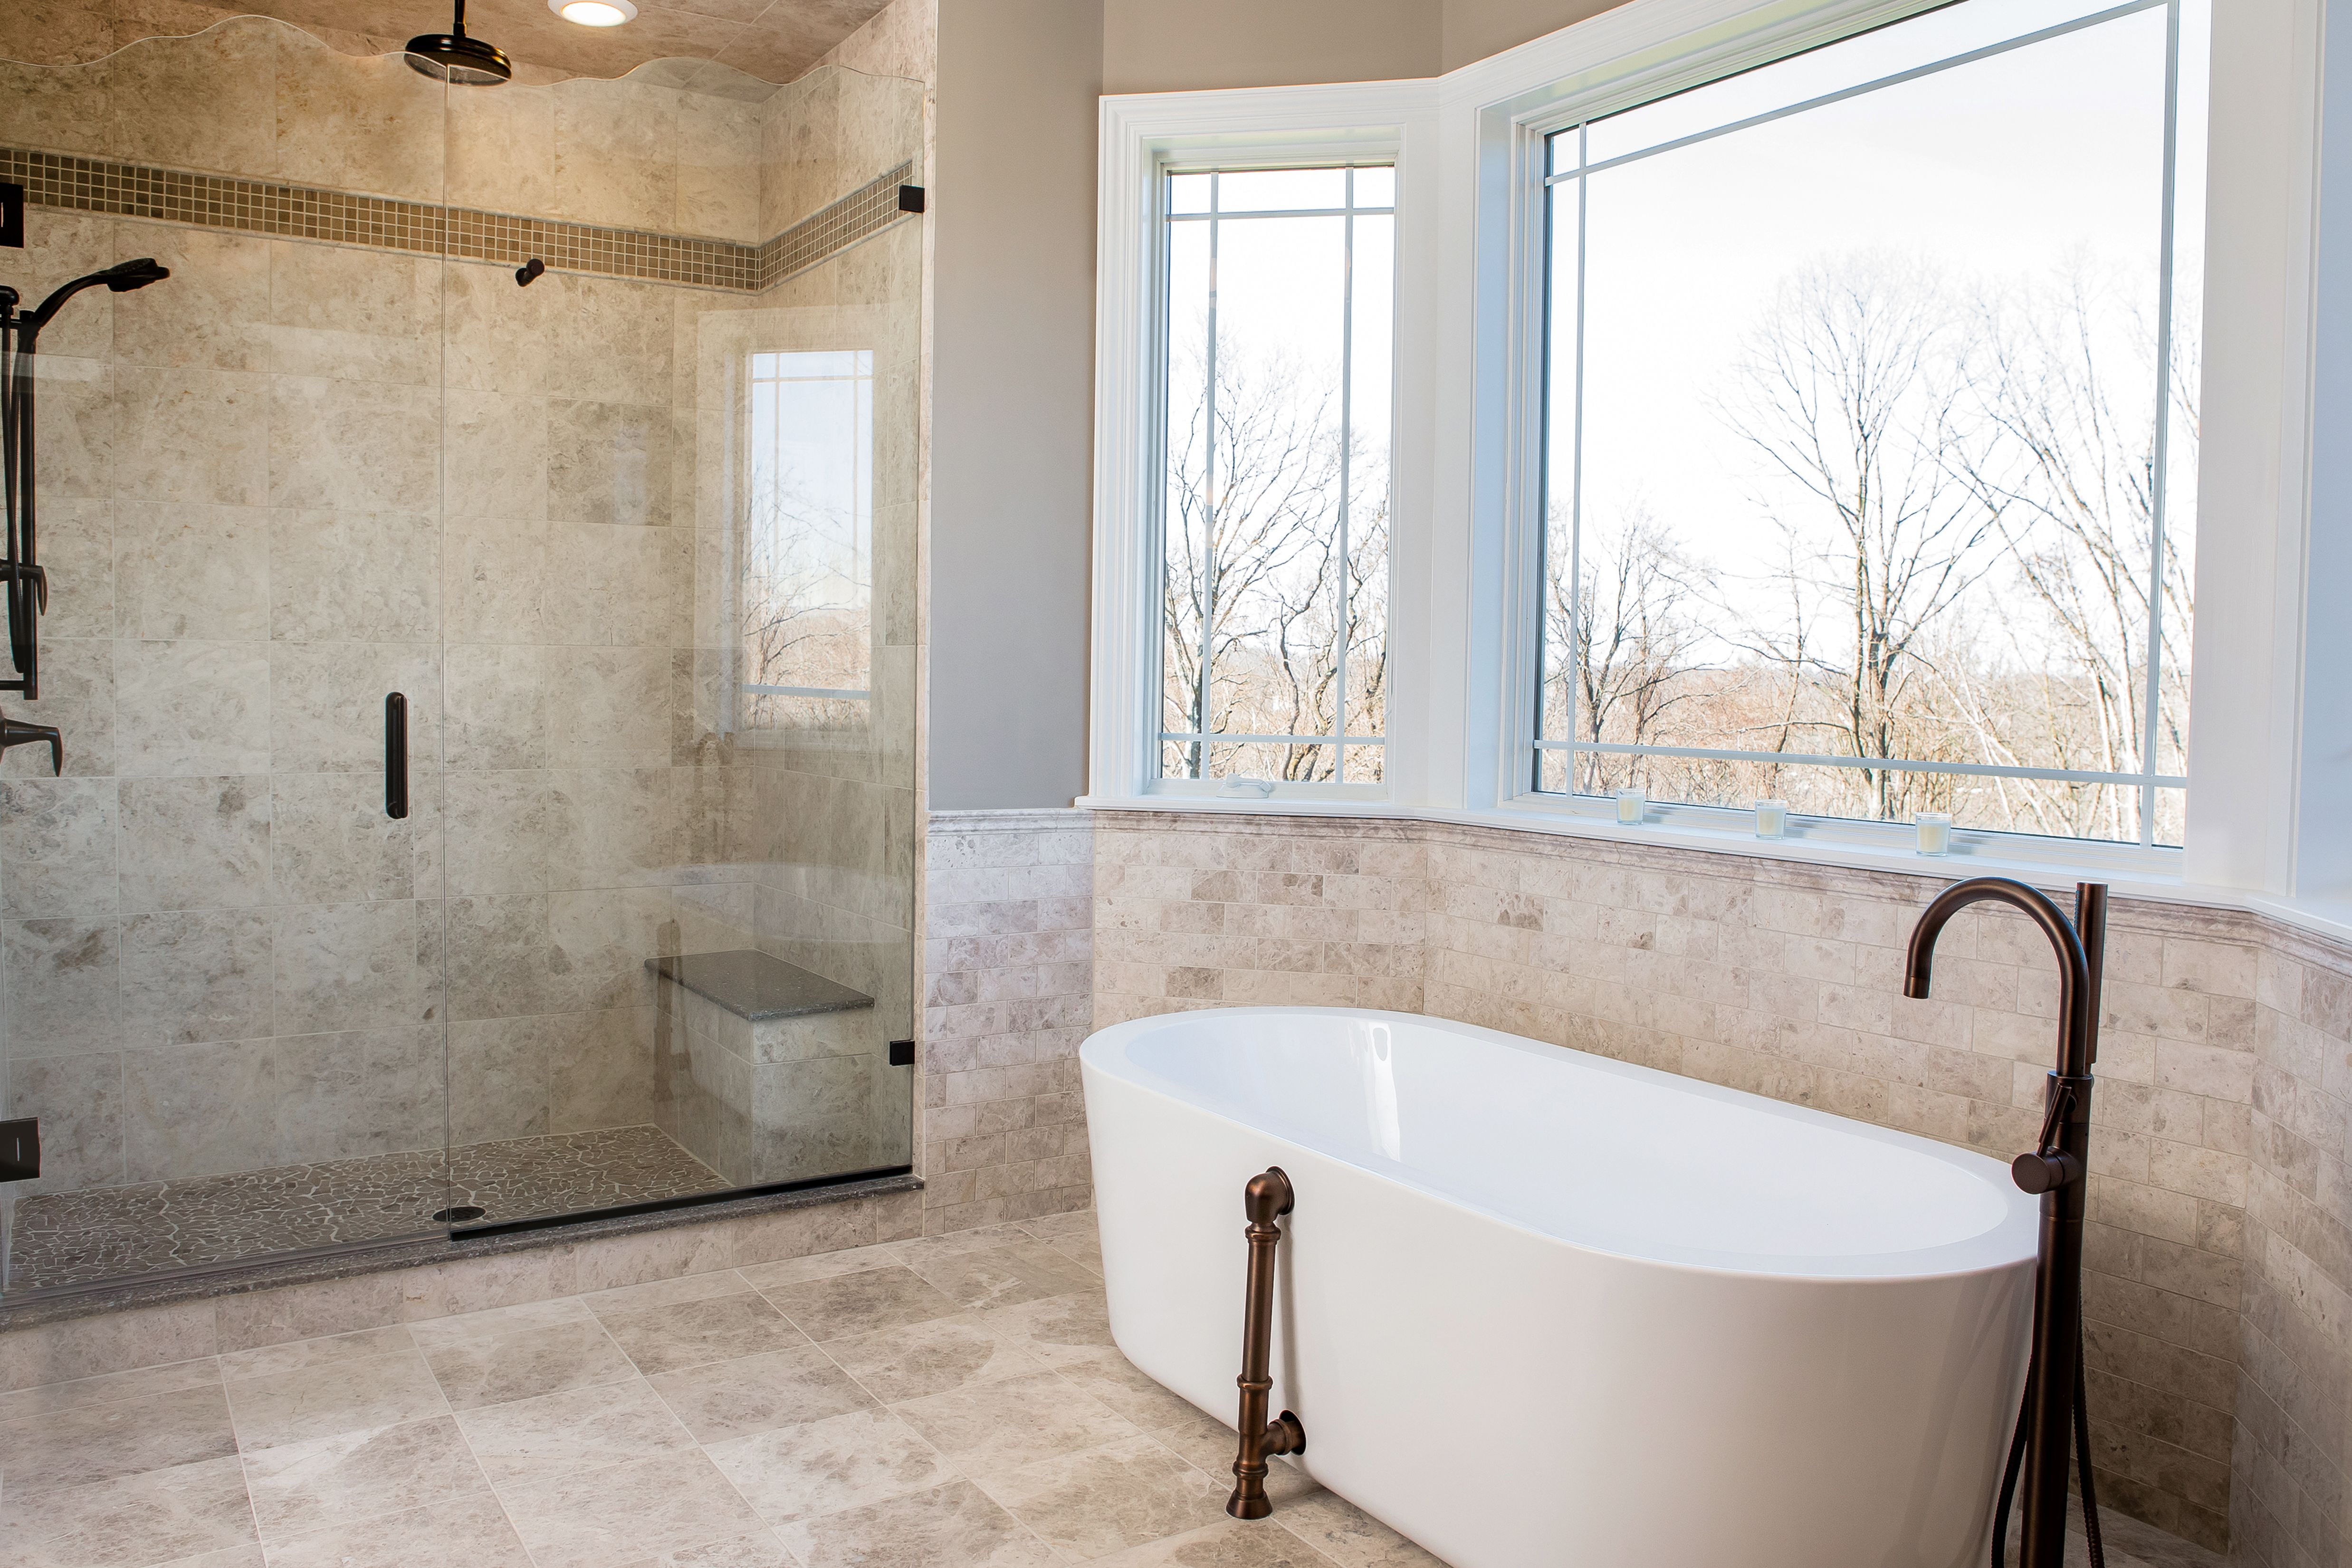 Private Residence Traditional Home Remodel Bathremodel Bathroom